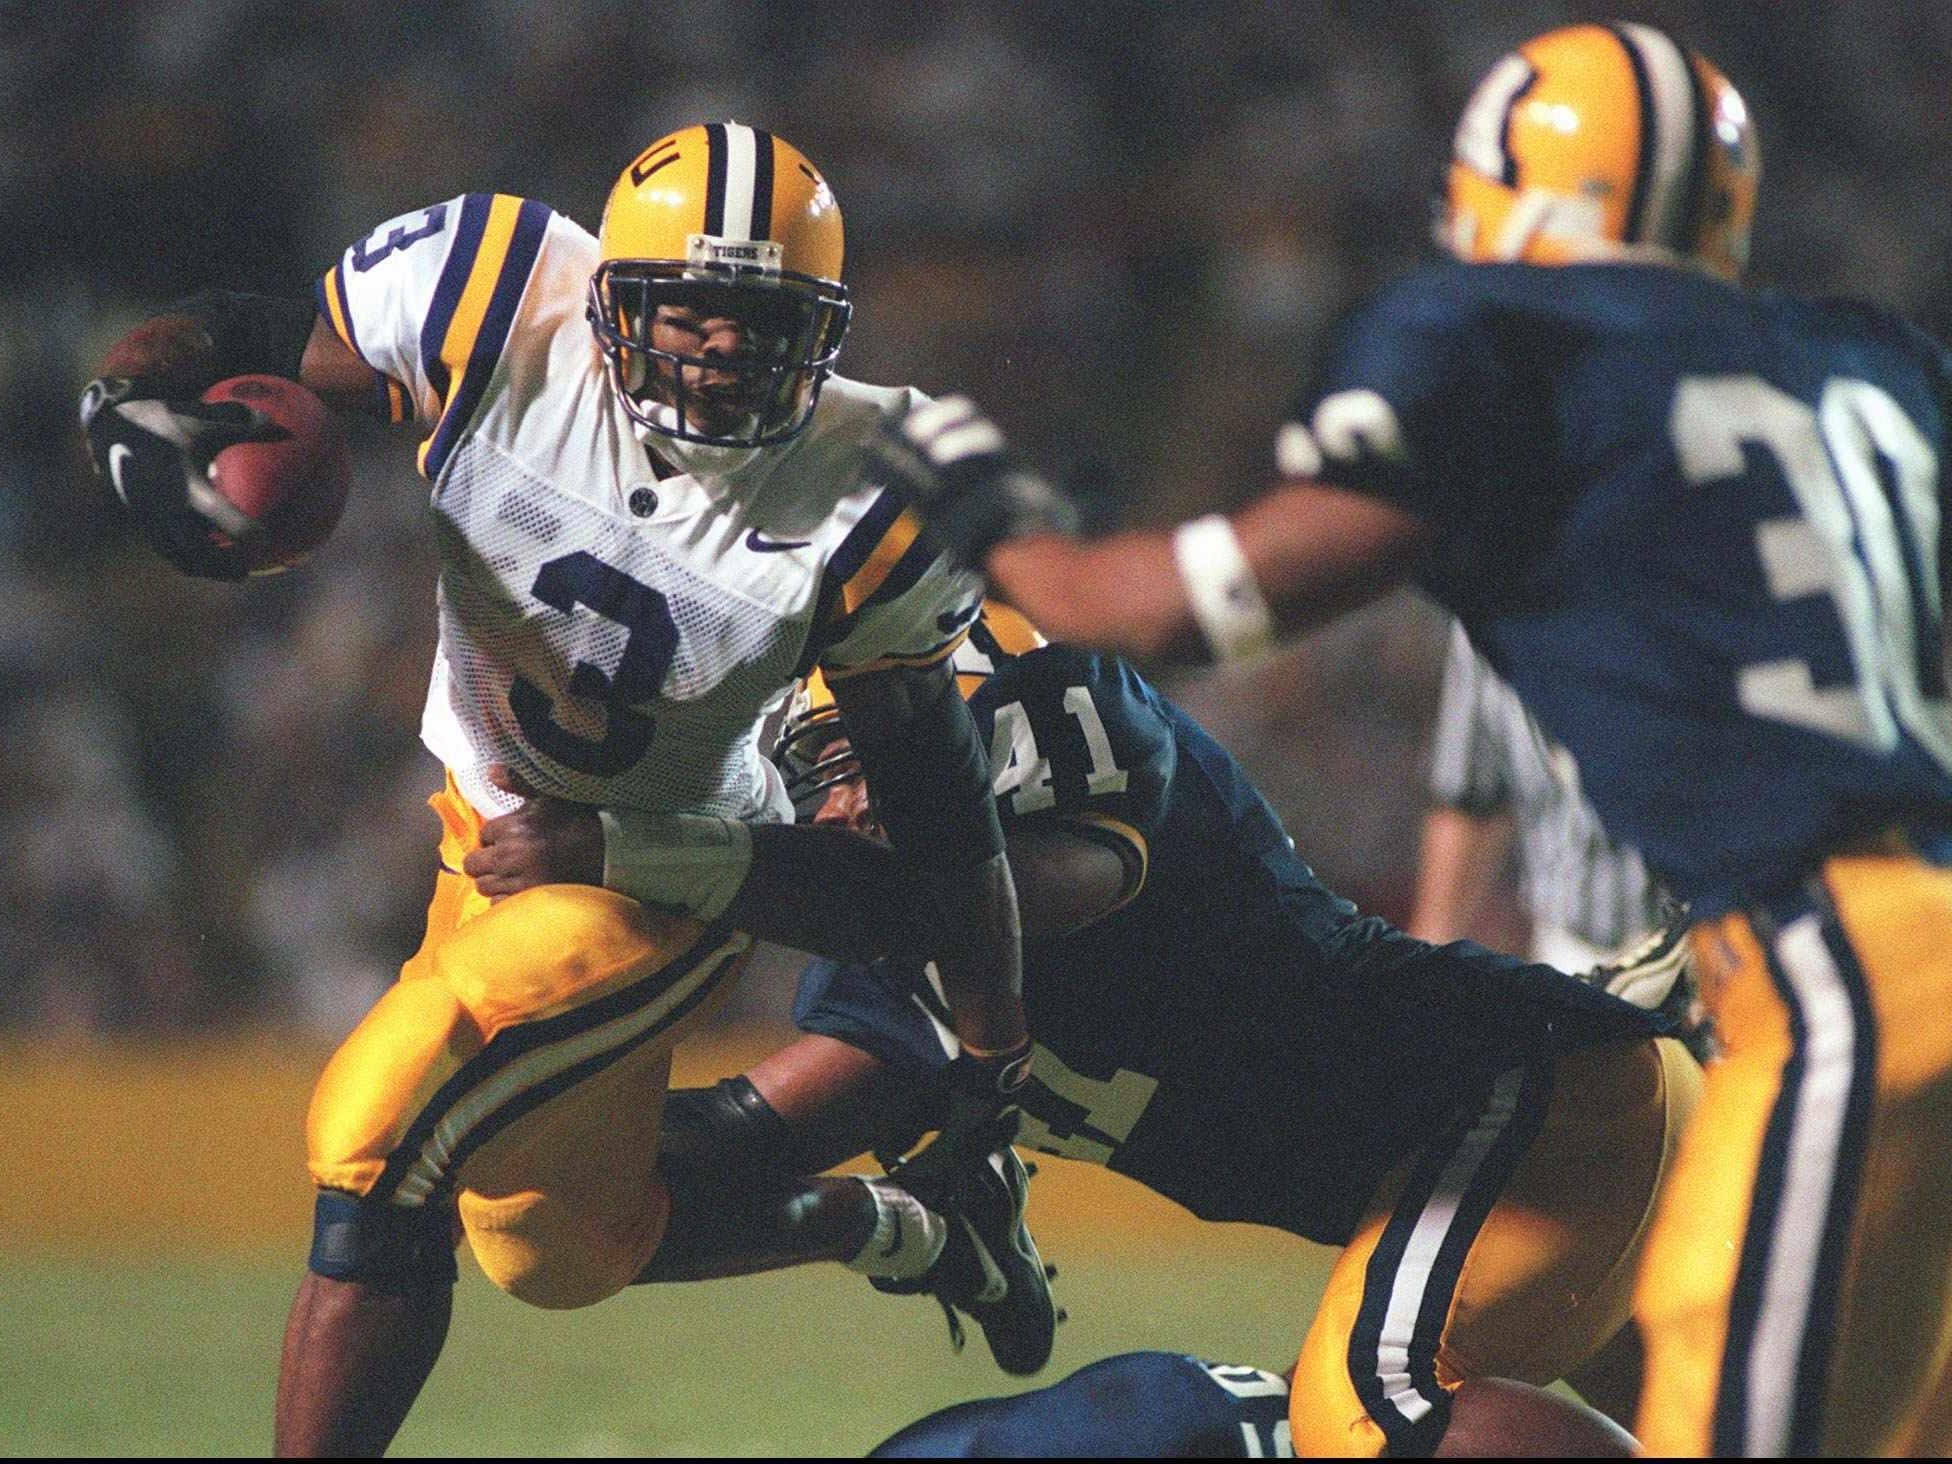 LSU's Kevin Faulk (3) runs for a first down picking up 6 yards before being brought down by Akron's Corey Christian (41) and Rich Reliford (30) a 1997 game in Tiger Stadium.